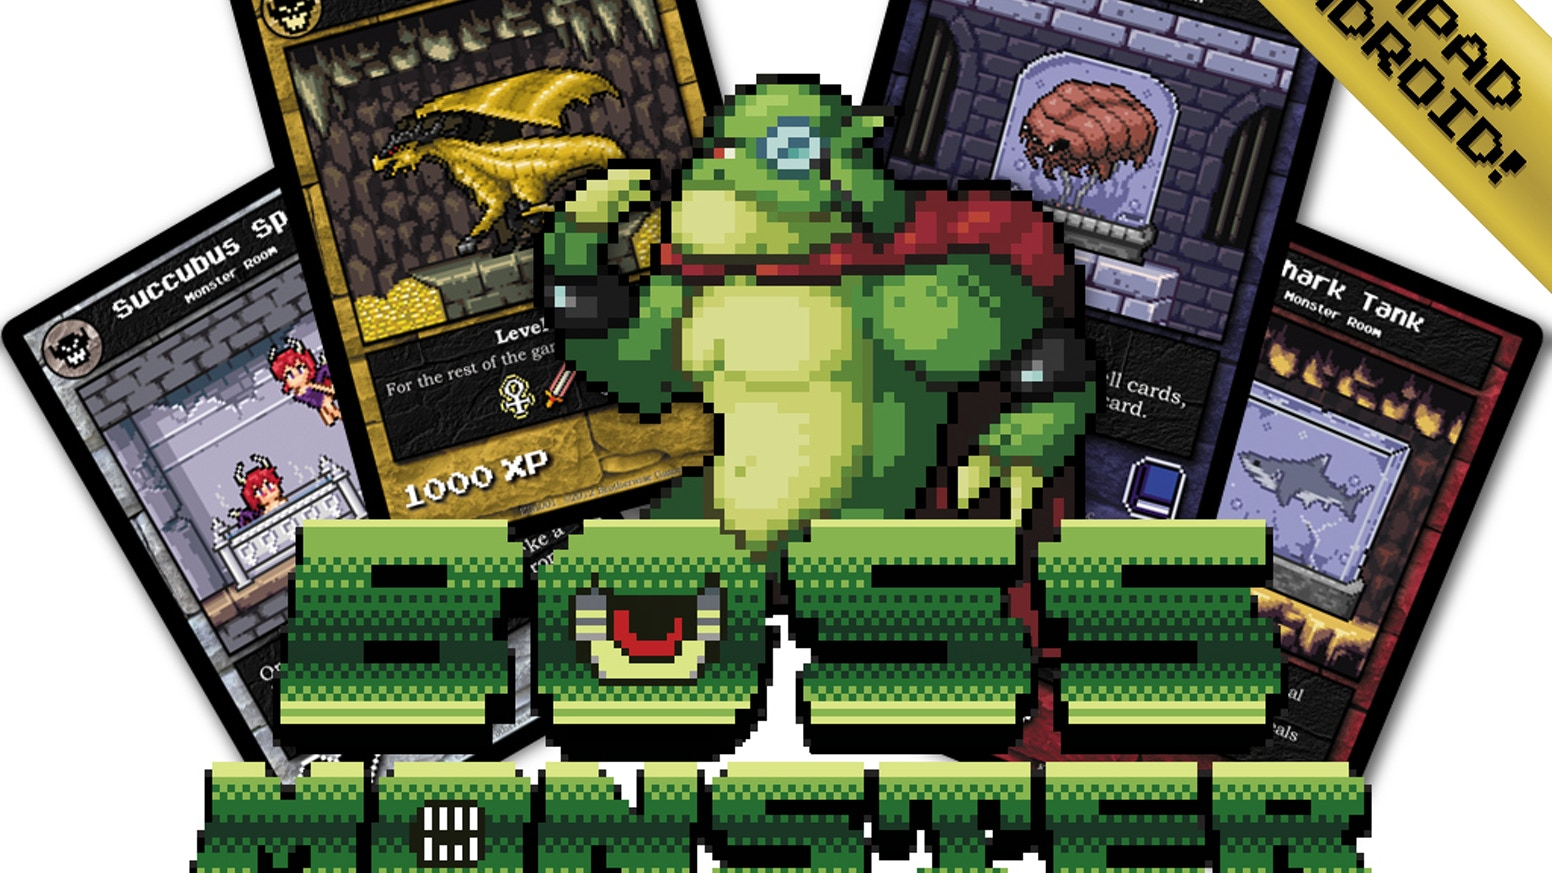 Boss monster dungeon building game for pc ipad android by become a boss build a dungeon and destroy puny heroes the best selling indie card game is coming to pc ipad and android tablets solutioingenieria Image collections